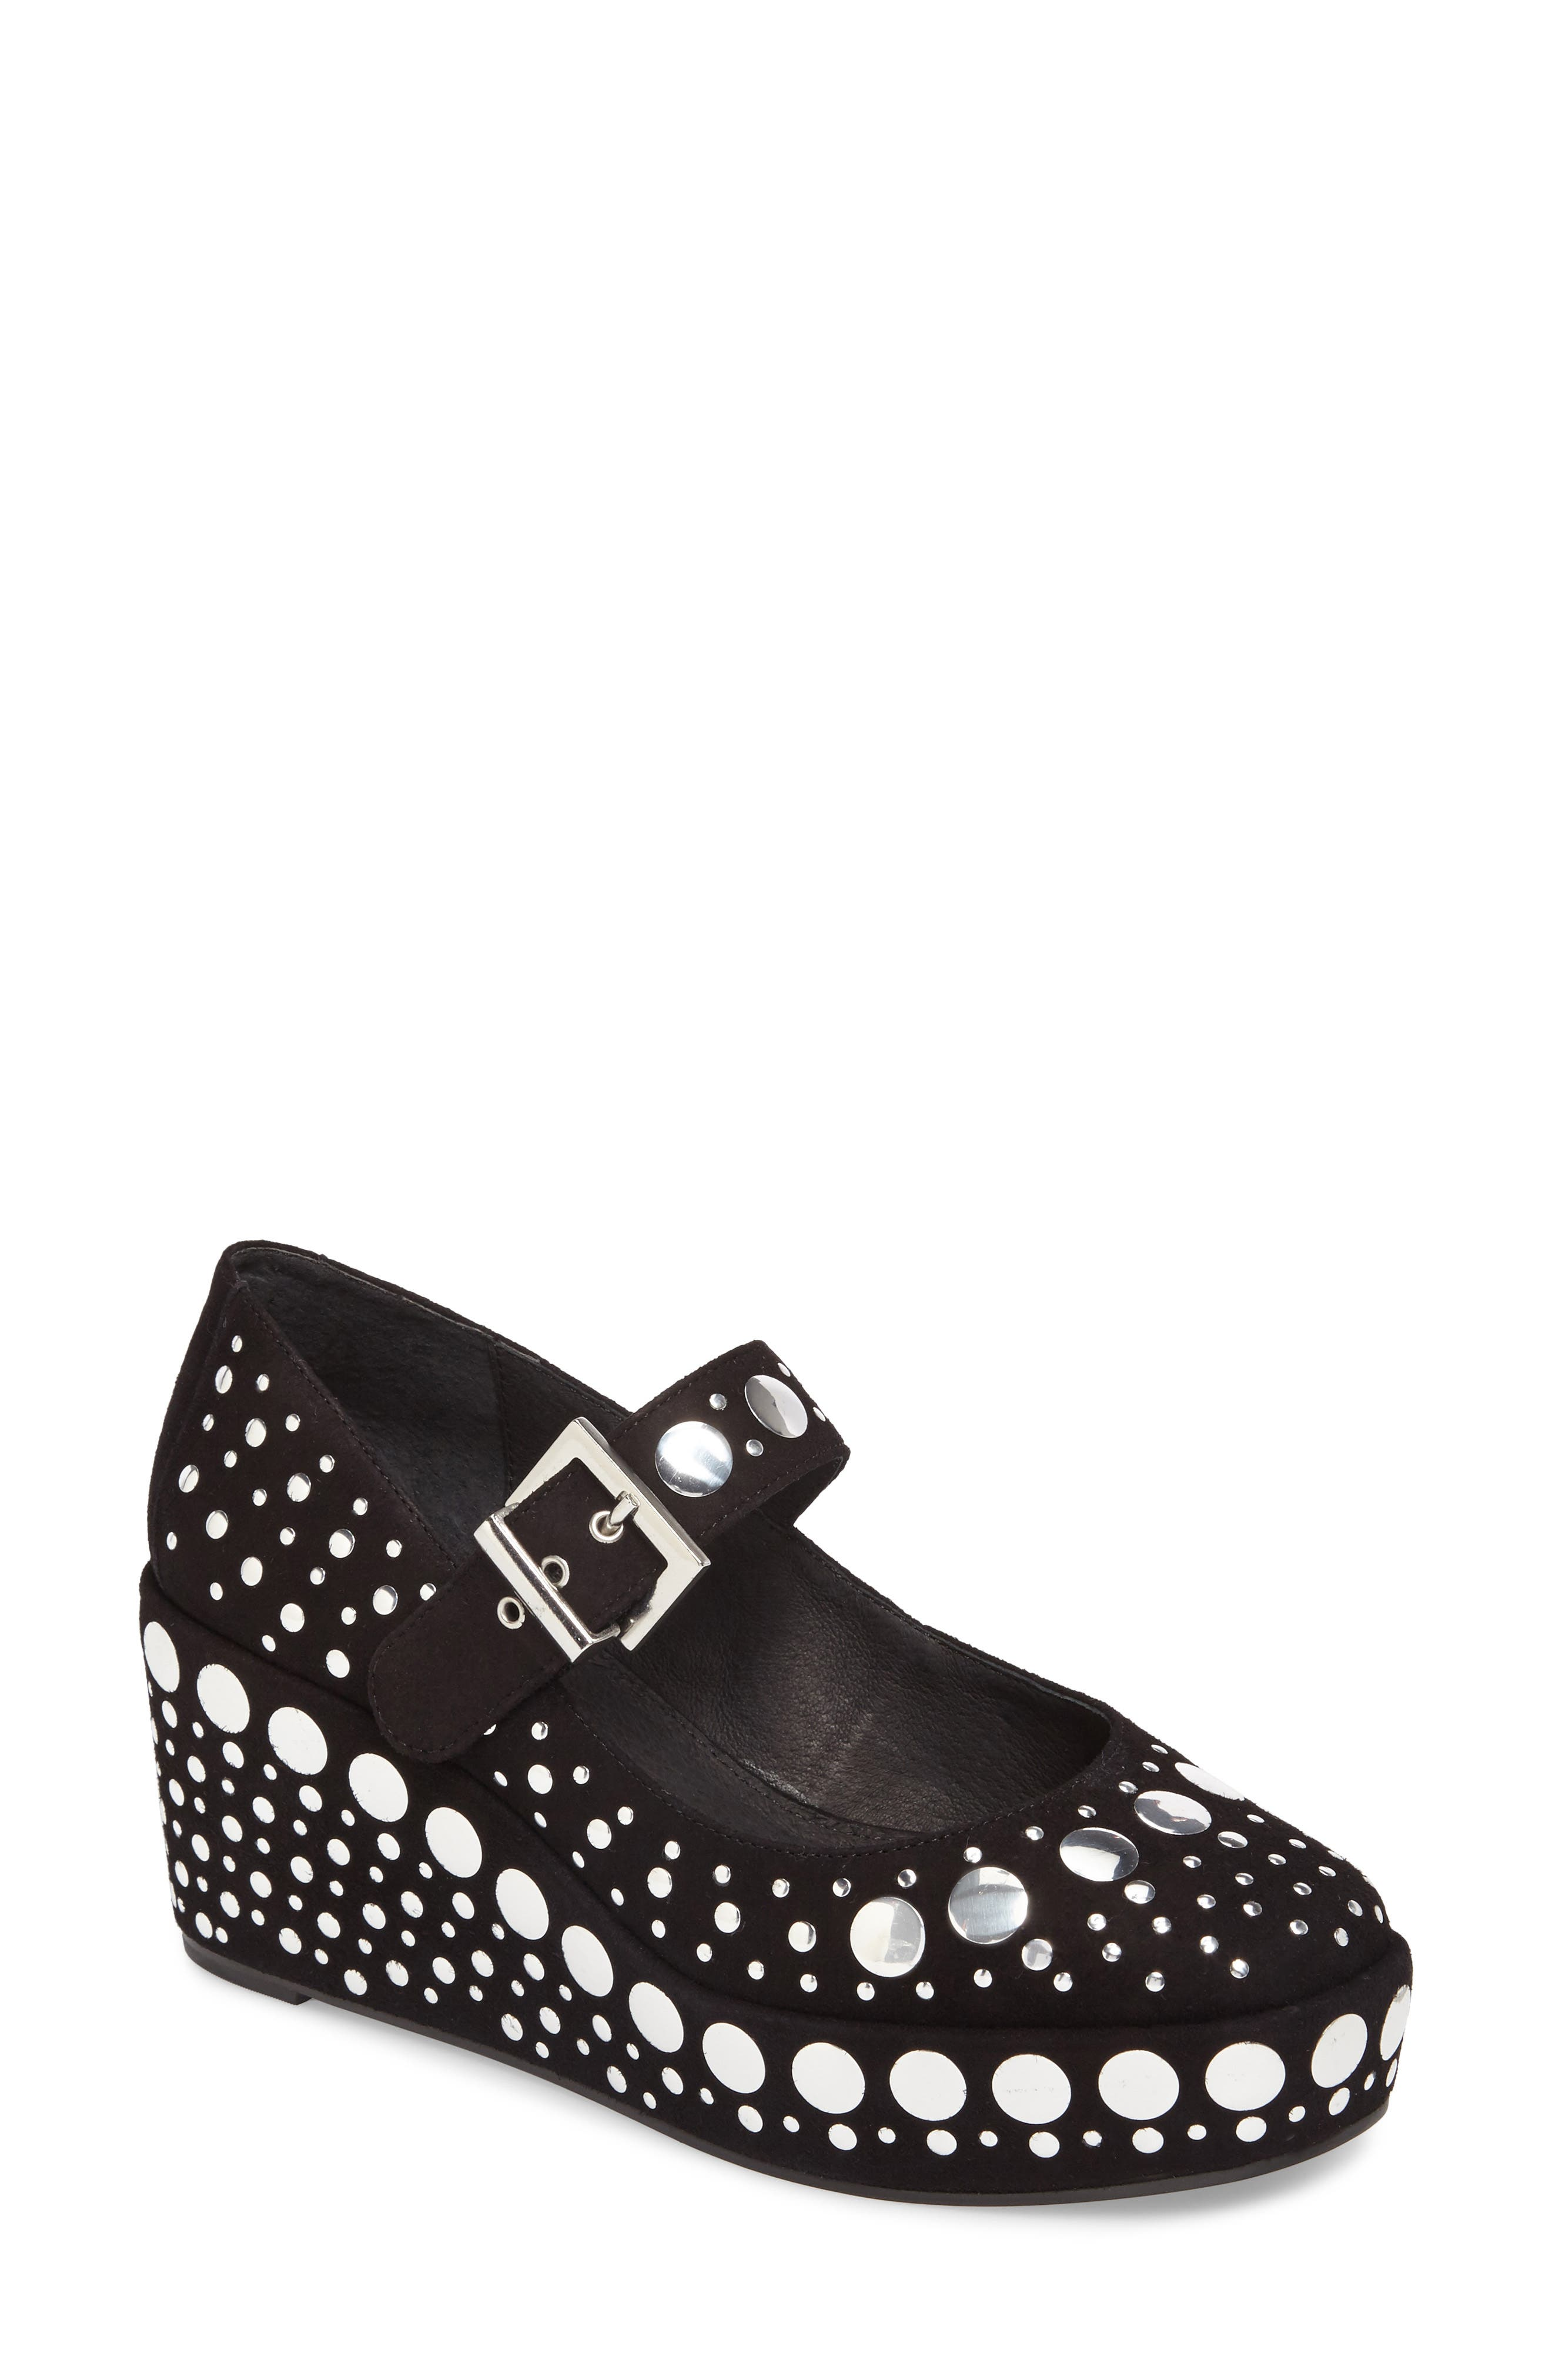 Cecelia New York Giselle Studded Mary Jane Wedge (Women)